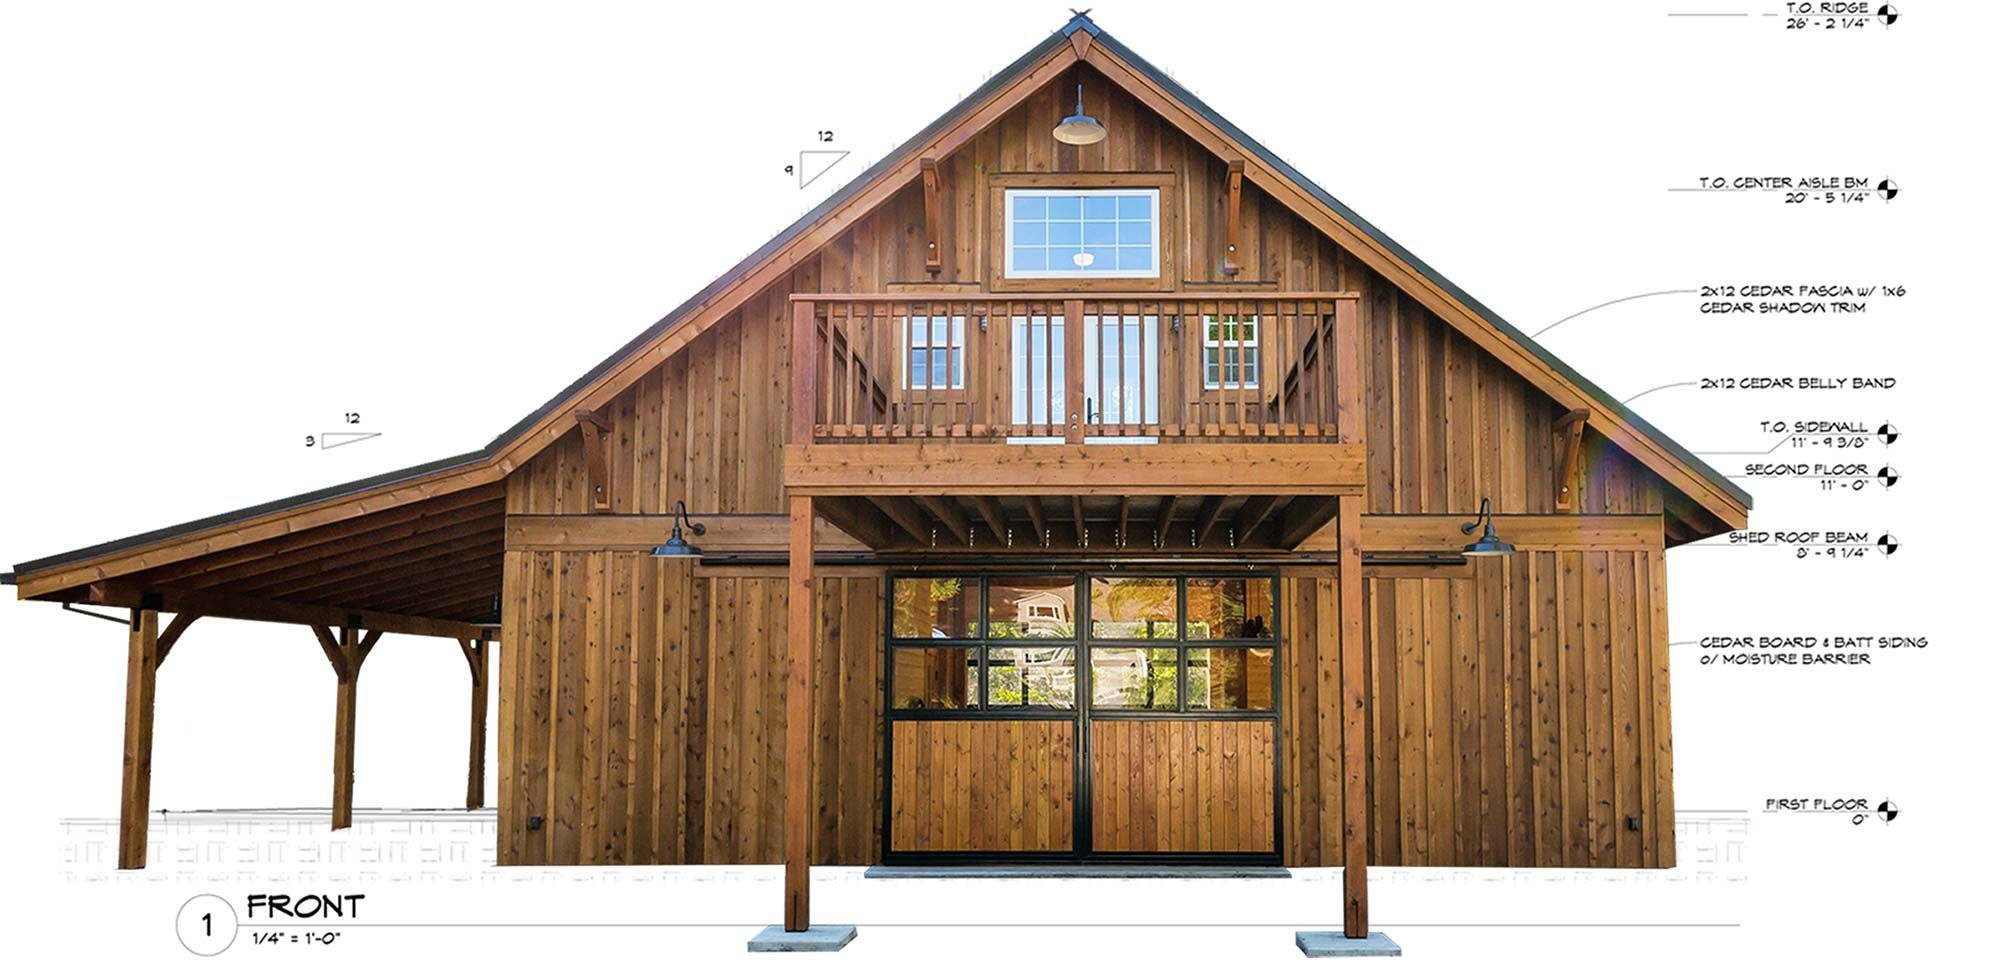 Dc structures is home to america 39 s most complete barn kits for Barn kits with apartments